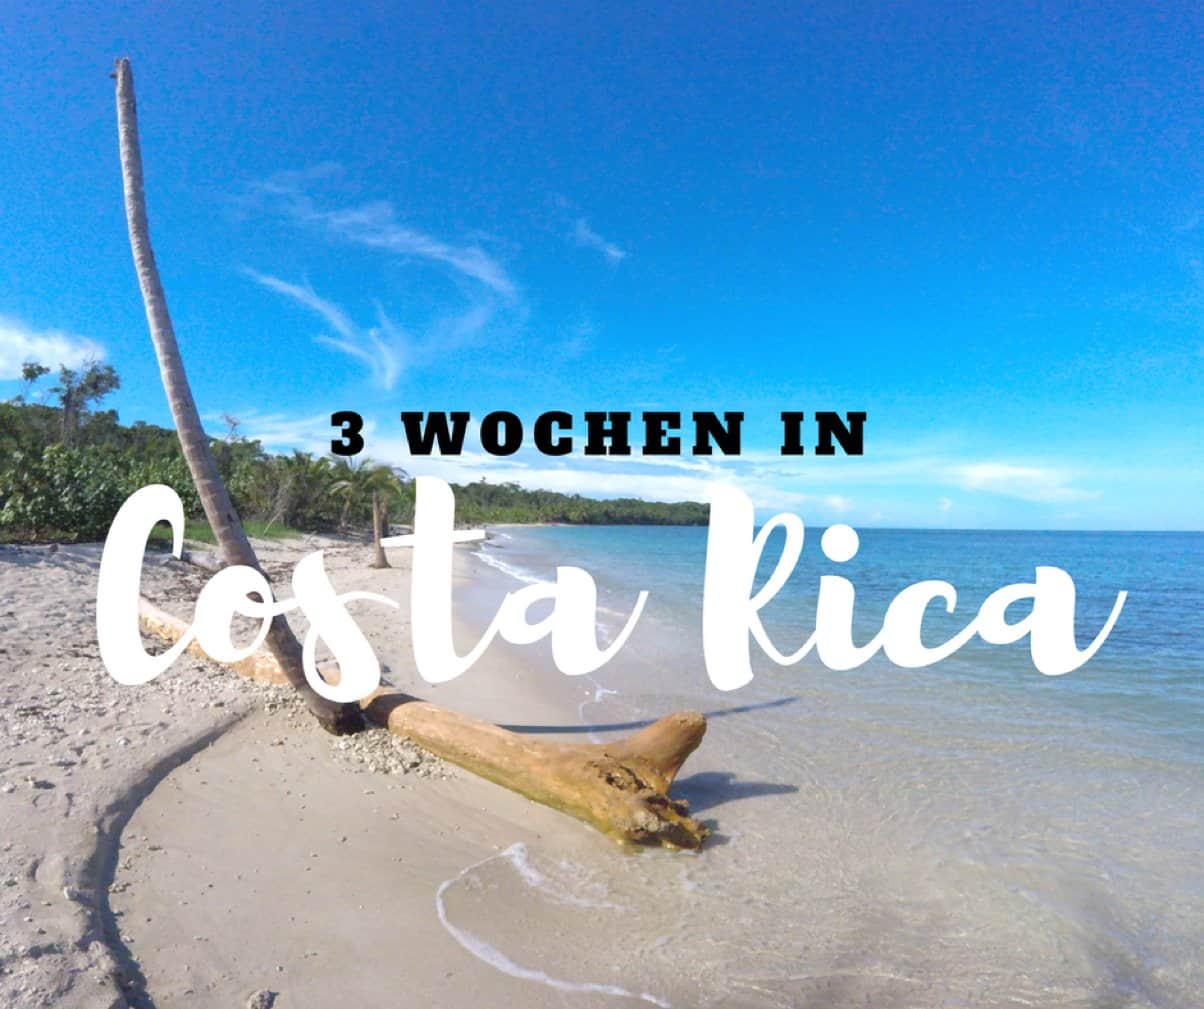 Drei Wochen in Costa Rica - Highlights über Highlights